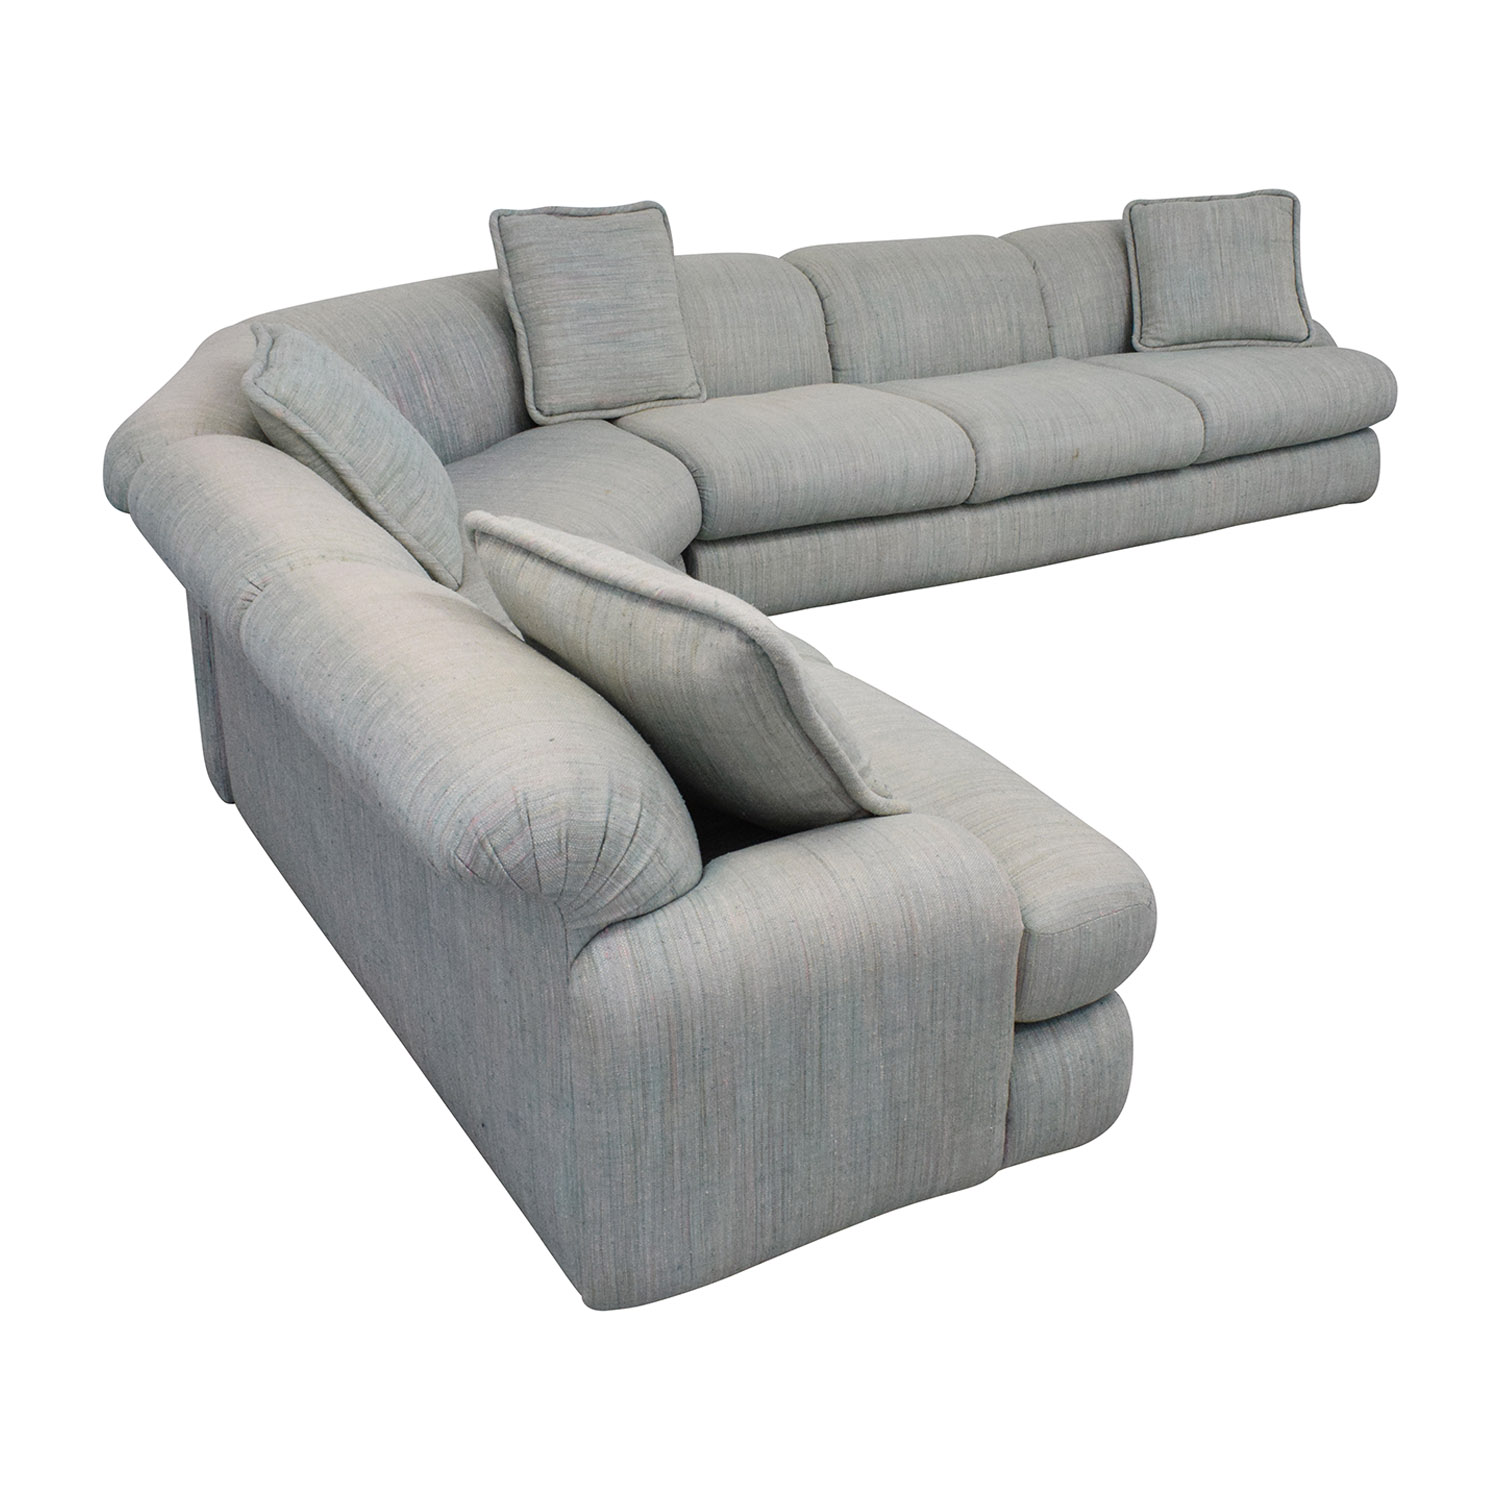 Preview Furniture David L. James Curved Corner Sectional Sofa / Sectionals